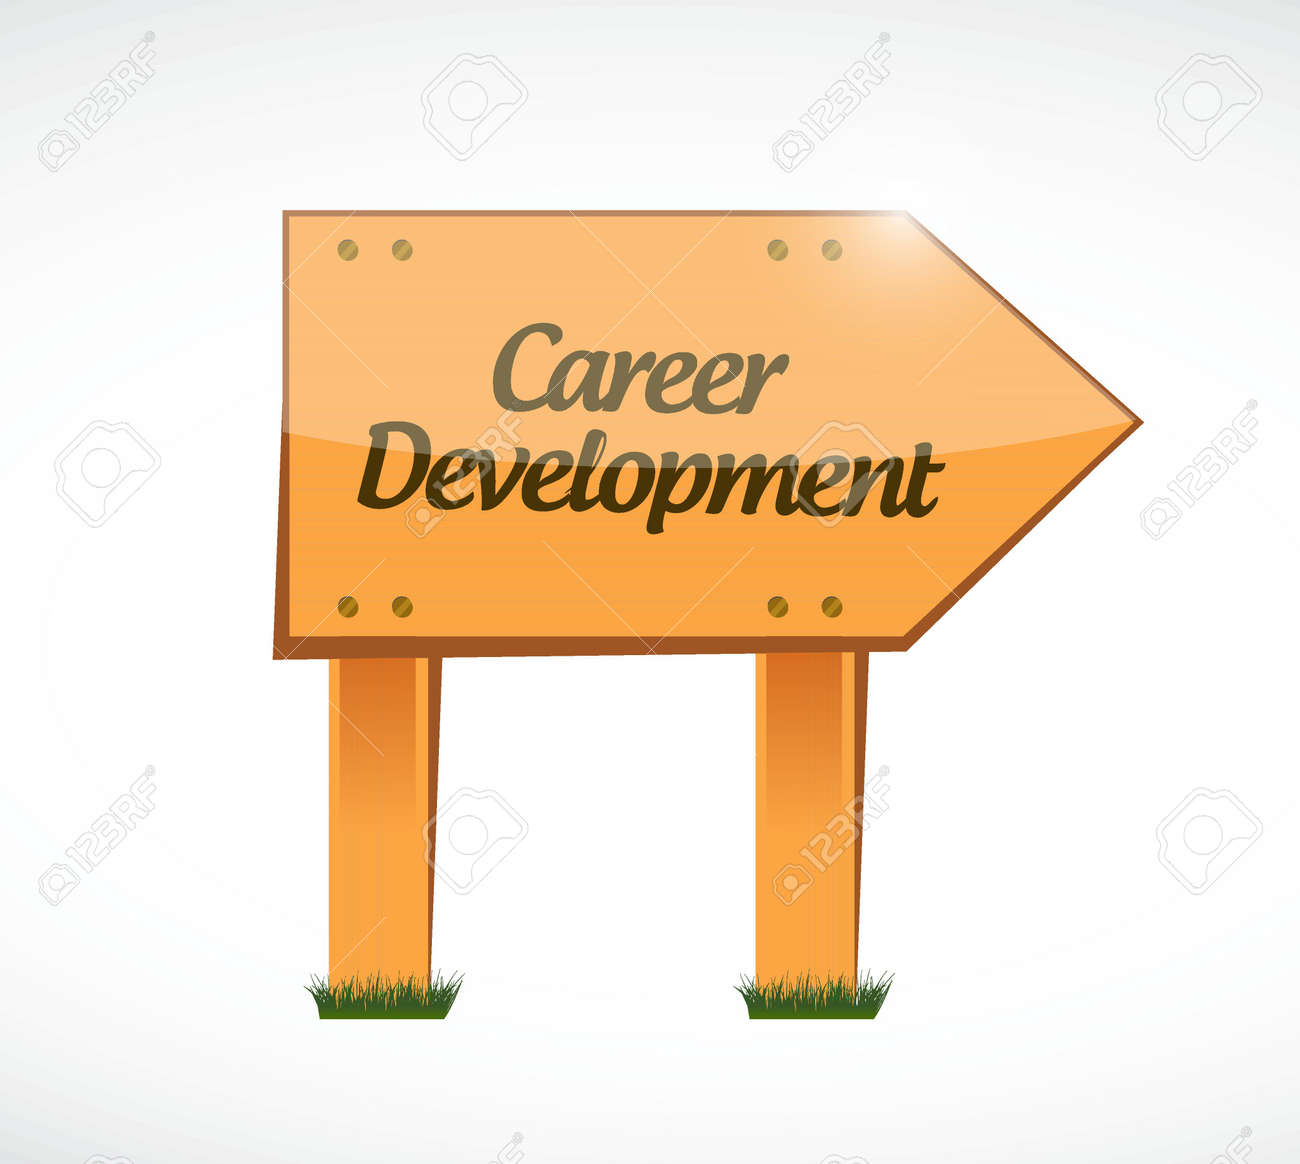 career development wood sign concept illustration design graphic illustration career development wood sign concept illustration design graphic